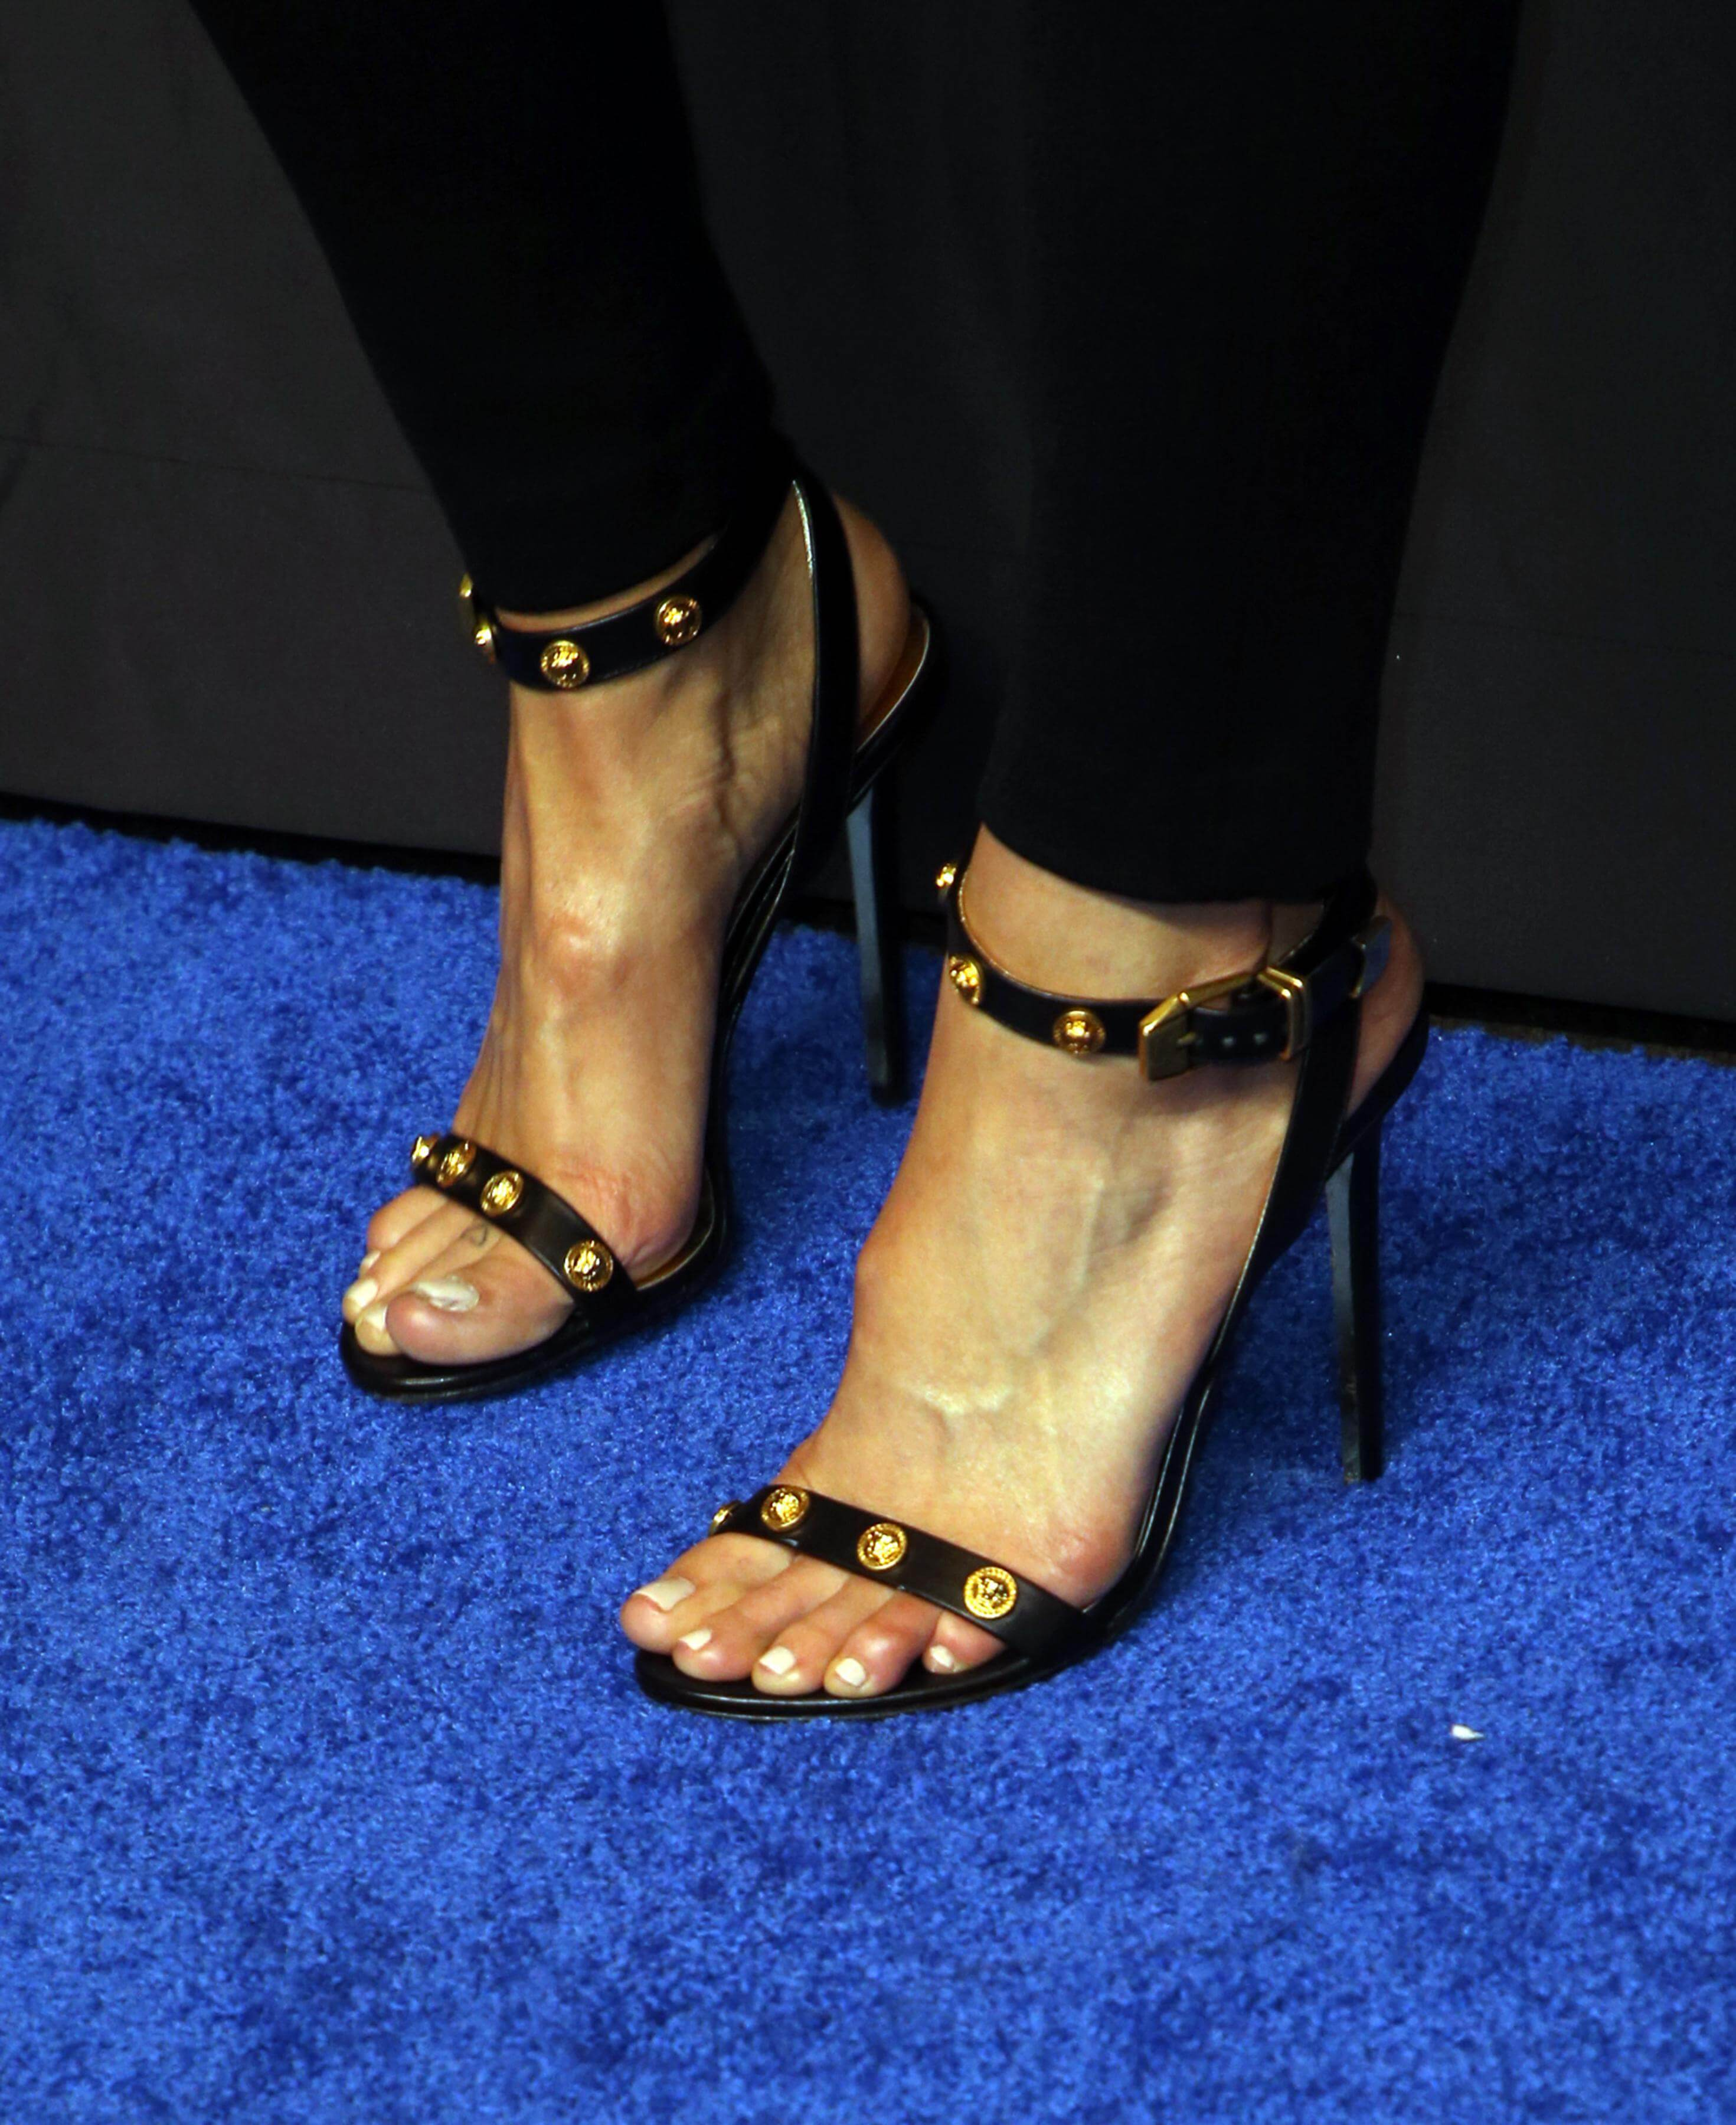 49 Sexy Mandy Moore Feet Pictures Will Make You Drool